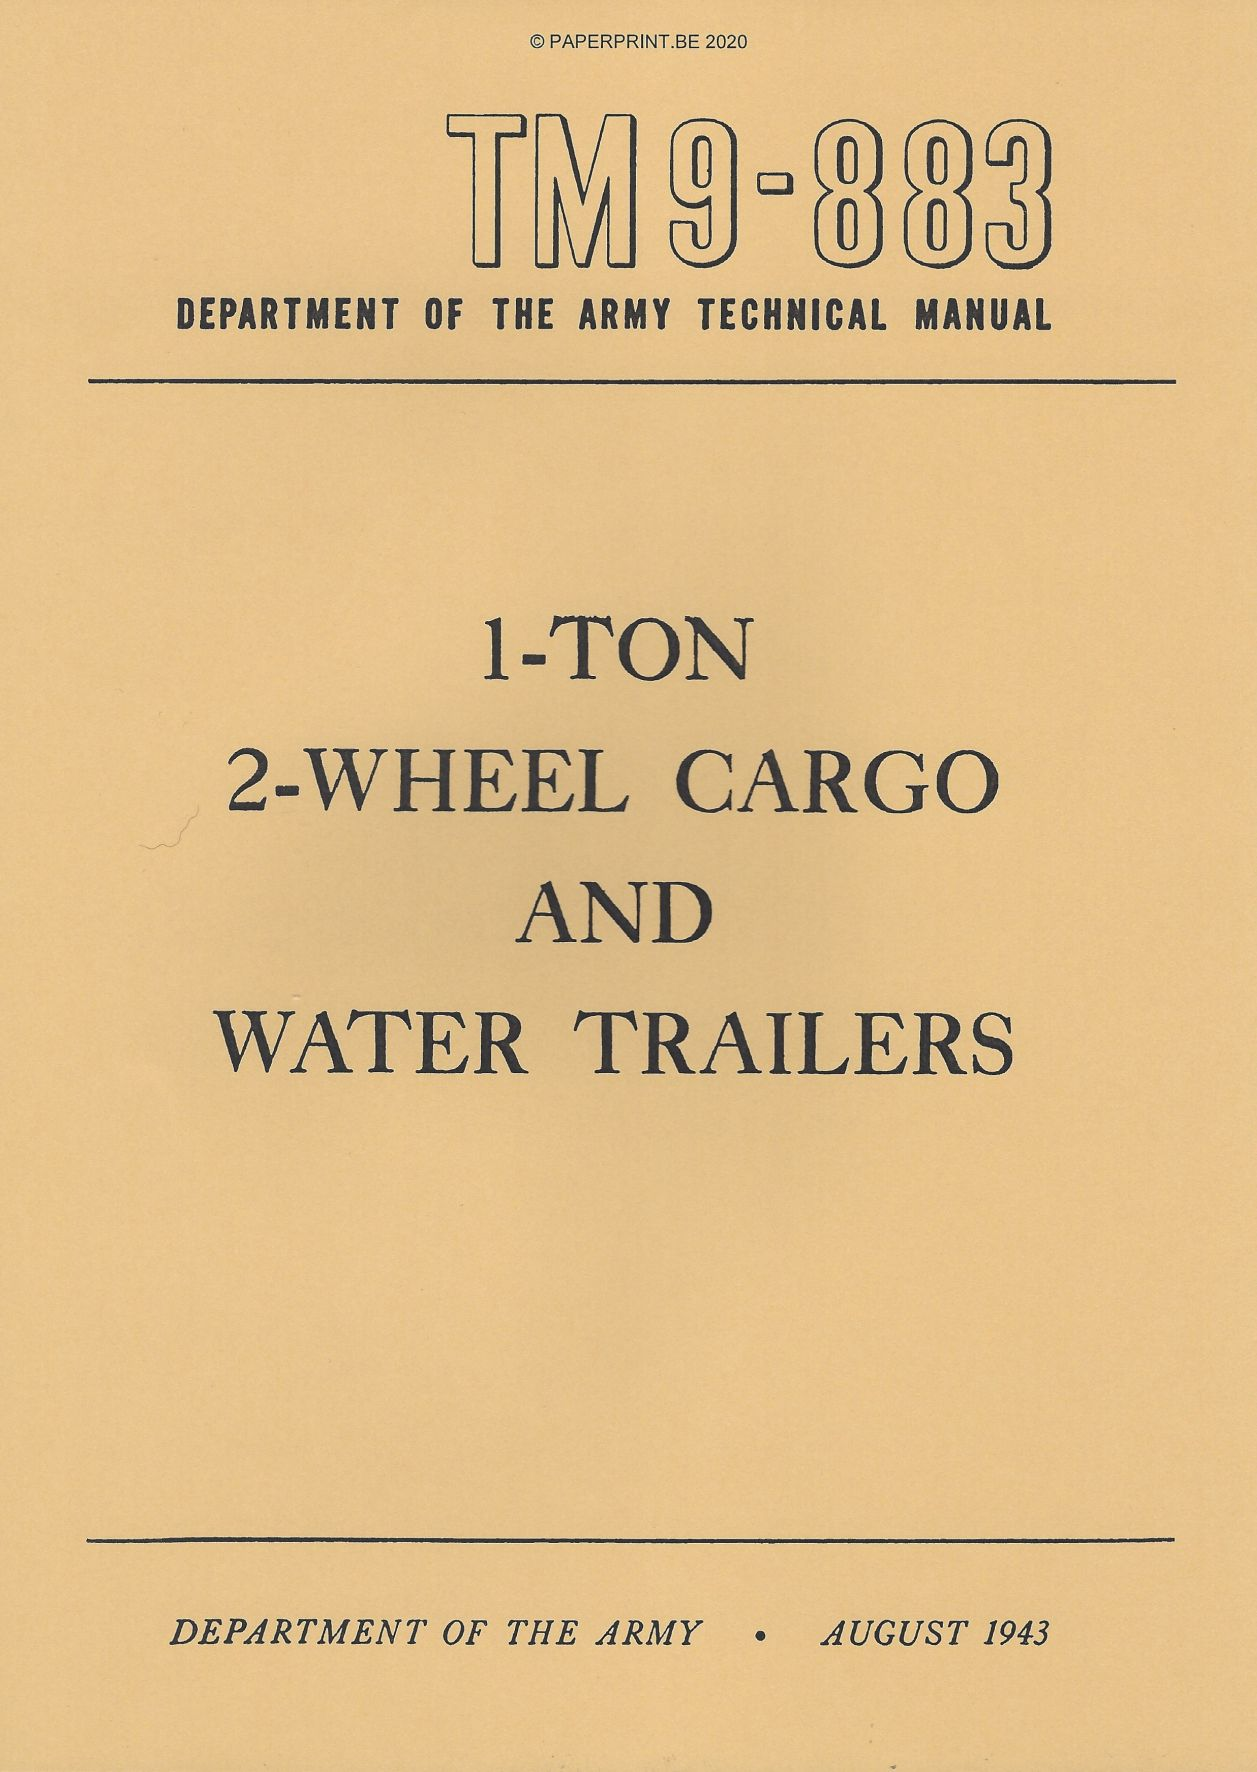 TM 9-883 US 1-TON 2-WHEEL CARGO AND WATER TRAILERS